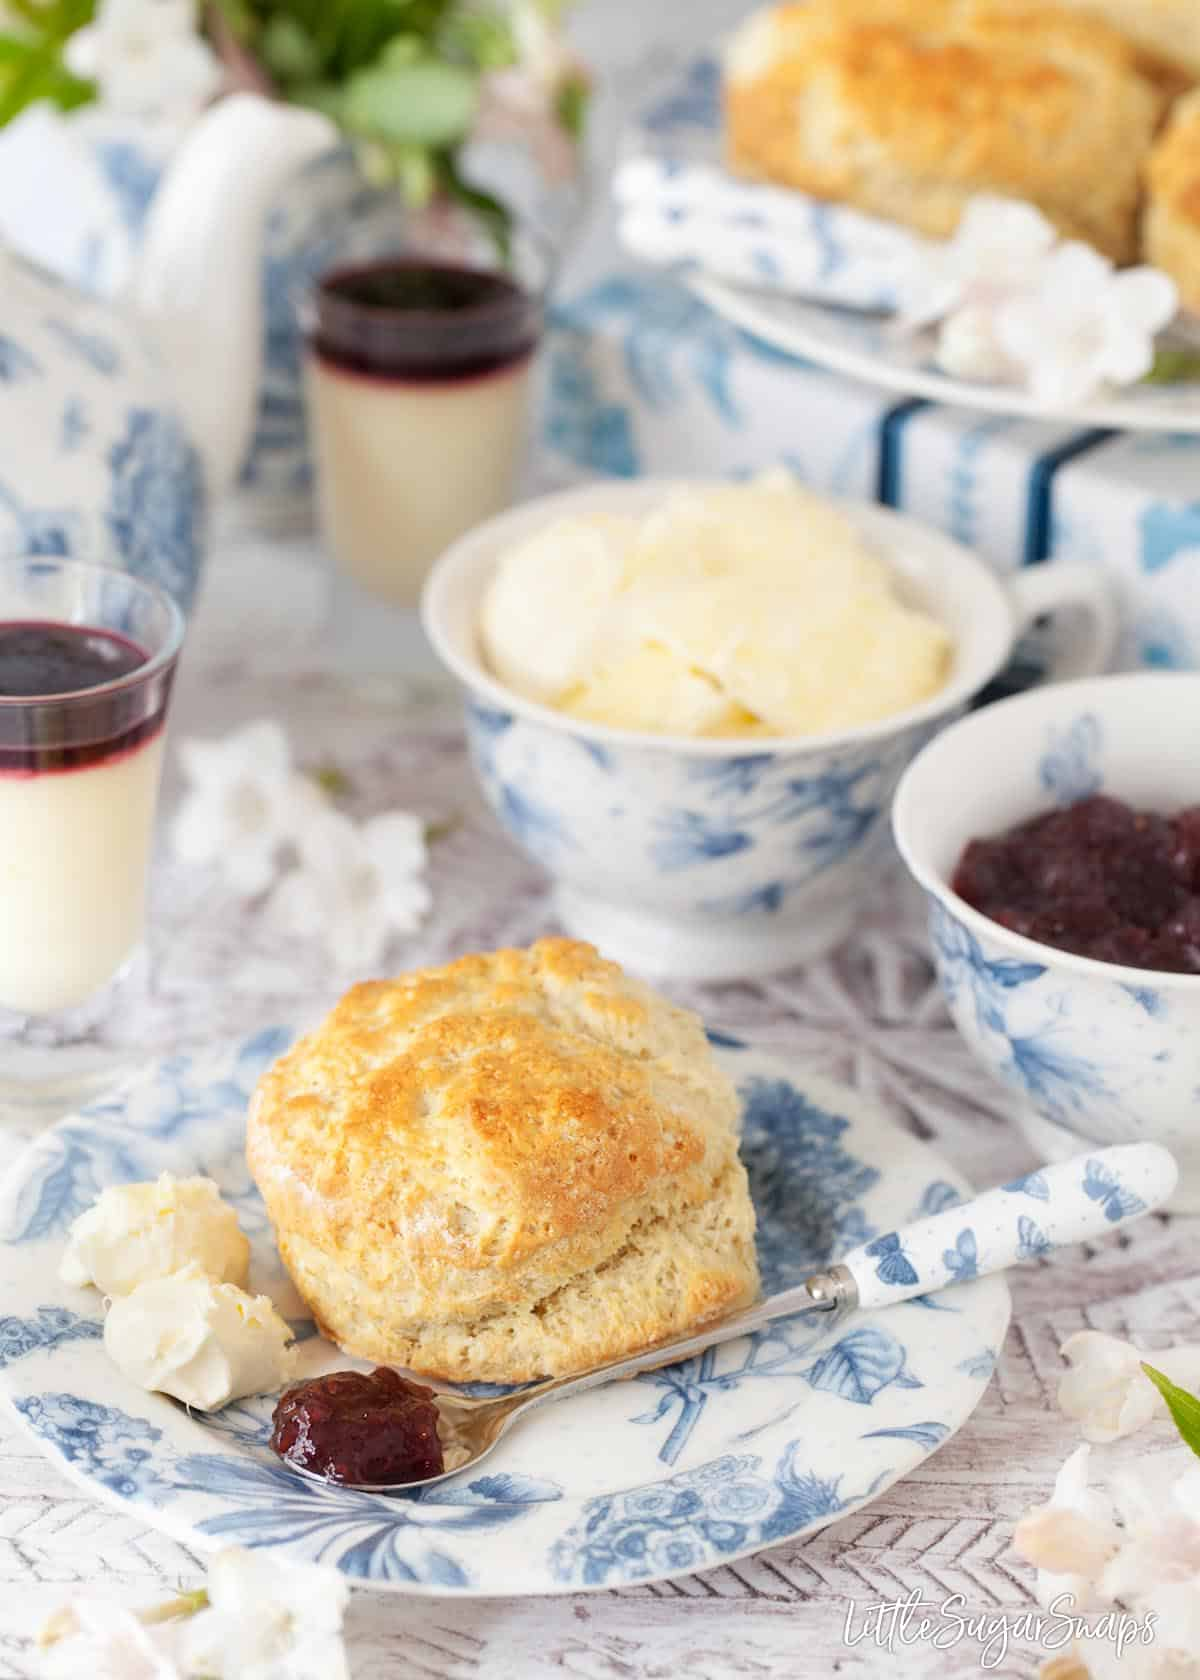 An English scone with 2 scoops of clotted cream and a spoon with raspberry jam.